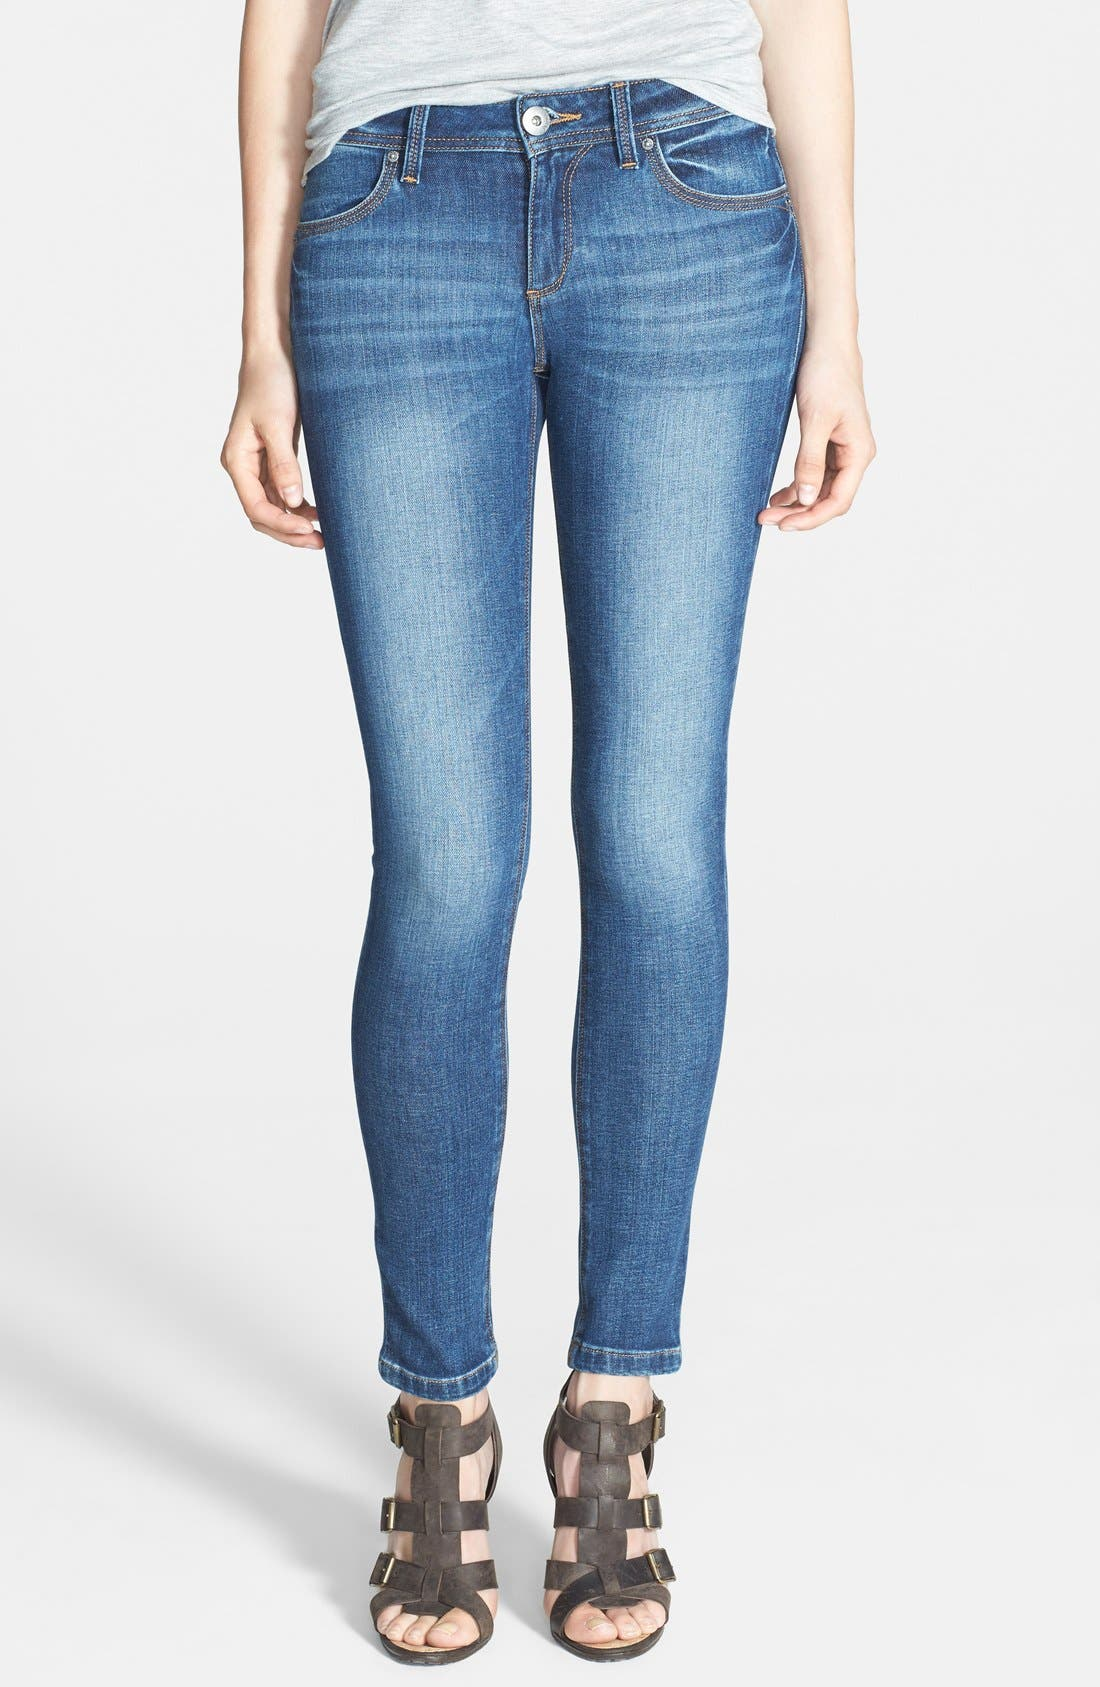 Alternate Image 1 Selected - DL1961 'Emma' Power Legging Jeans (Cashel)